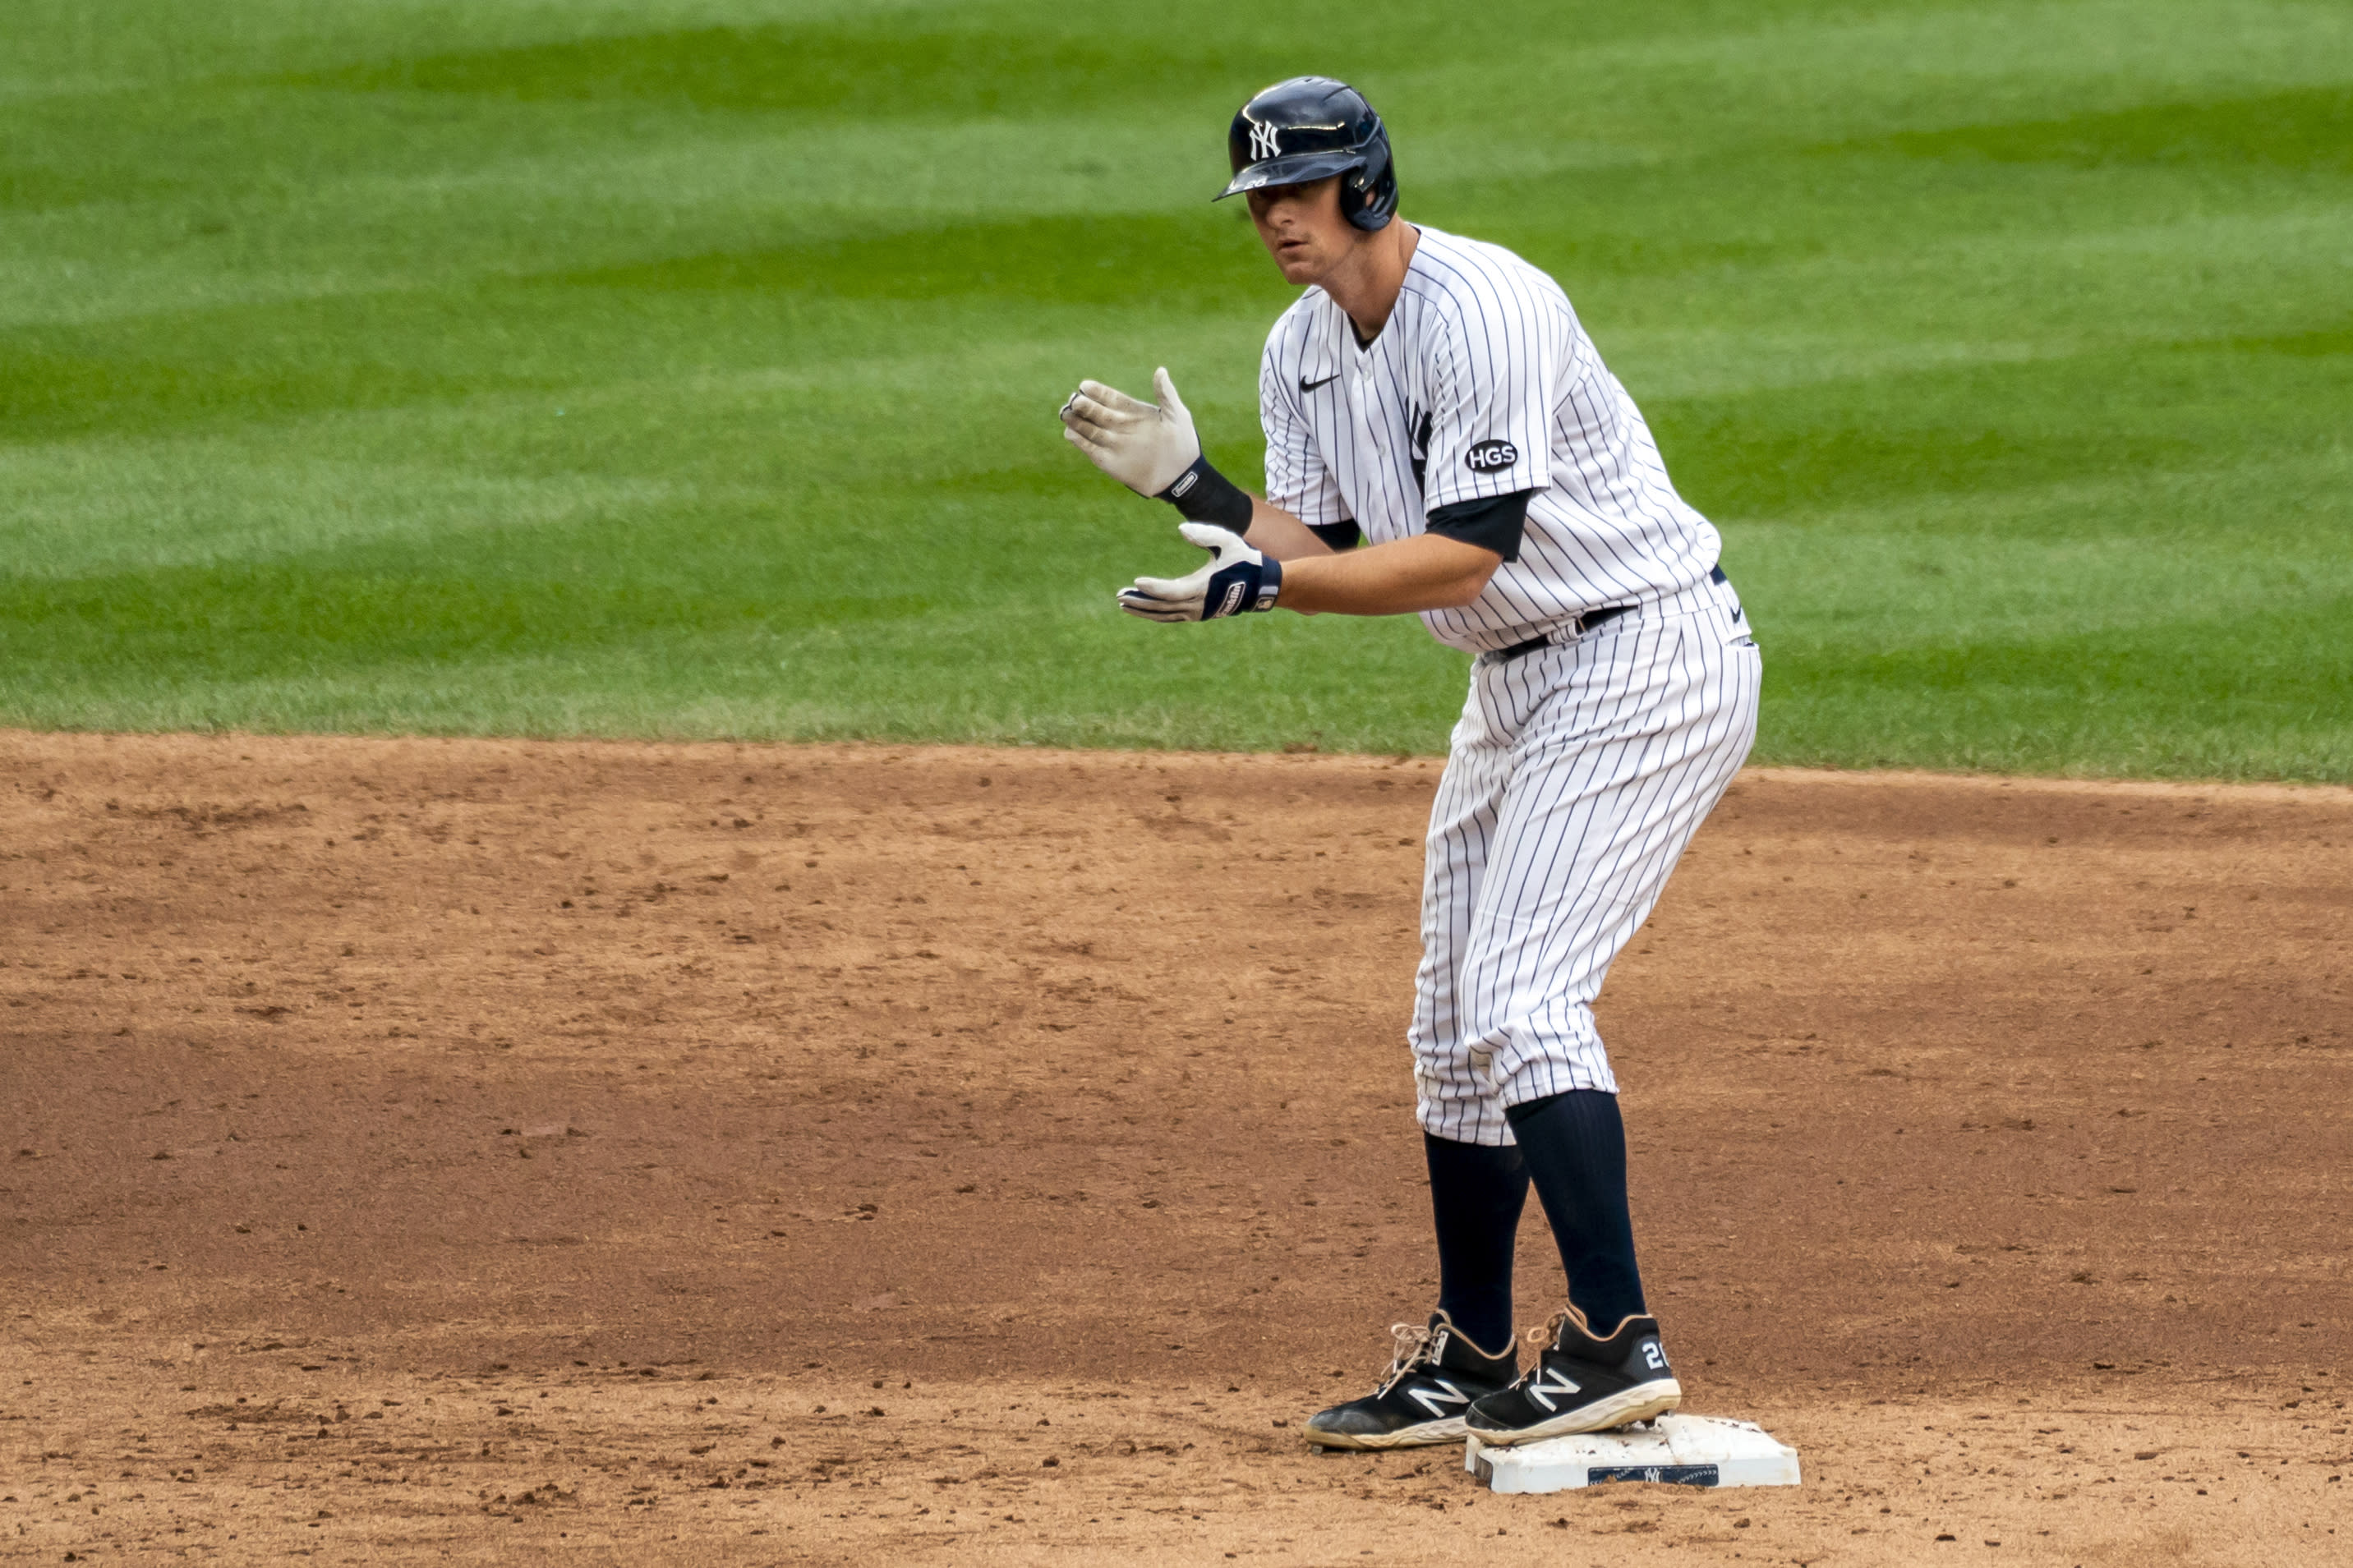 New York Yankees' DJ LeMahieu celebrates at second base after hitting a two-run double during the sixth inning of a baseball game against the Miami Marlins at Yankee Stadium, Saturday, Sept. 26, 2020, in New York. (AP Photo/Corey Sipkin)